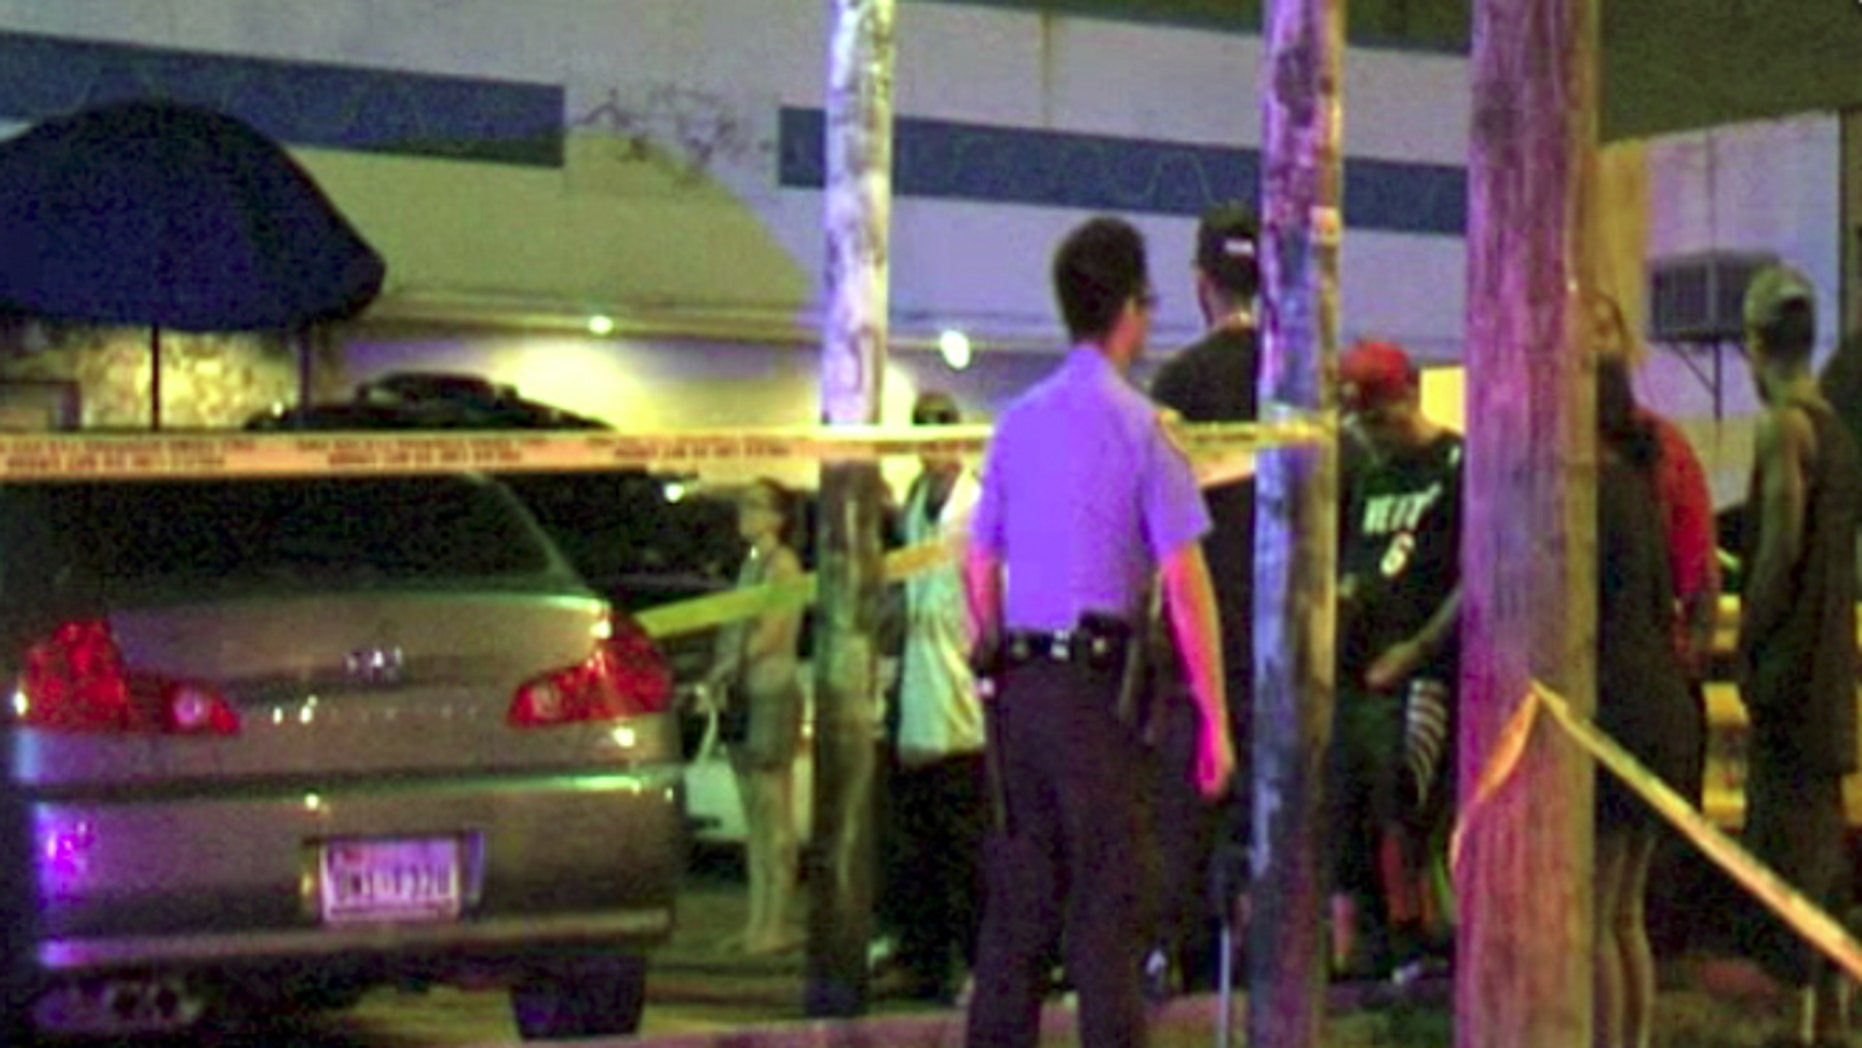 June 20: Police respond to a shooting outside a Houston strip club. So far, police have not identified a suspect or motive.